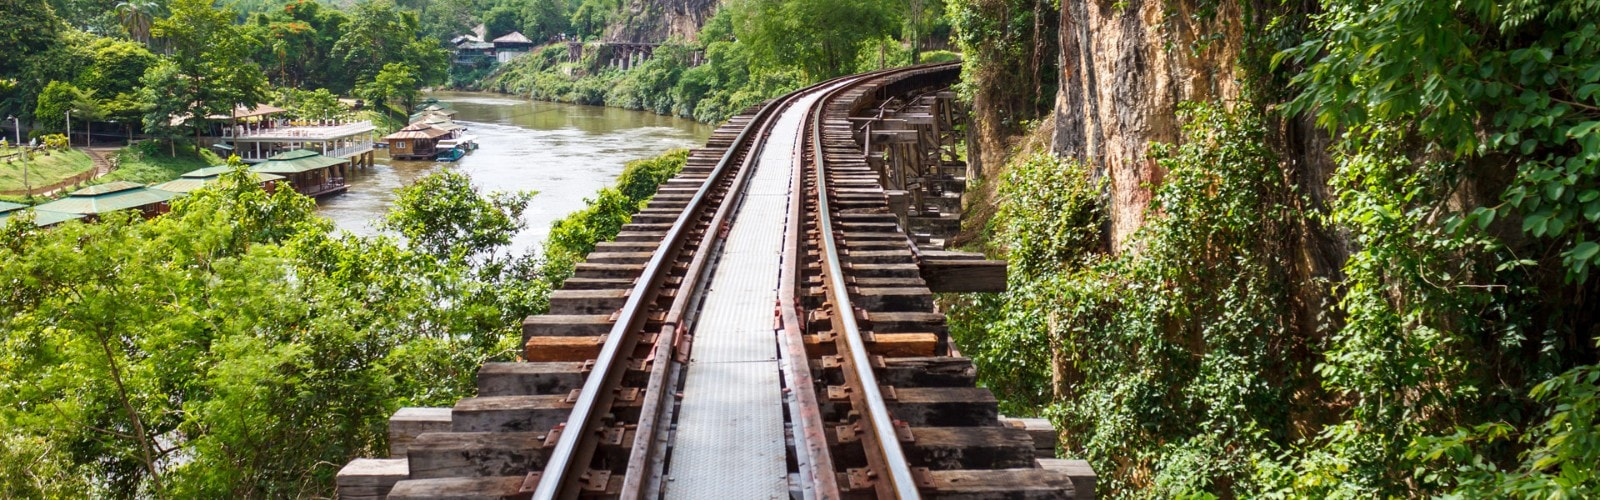 Death railway in Thailand.